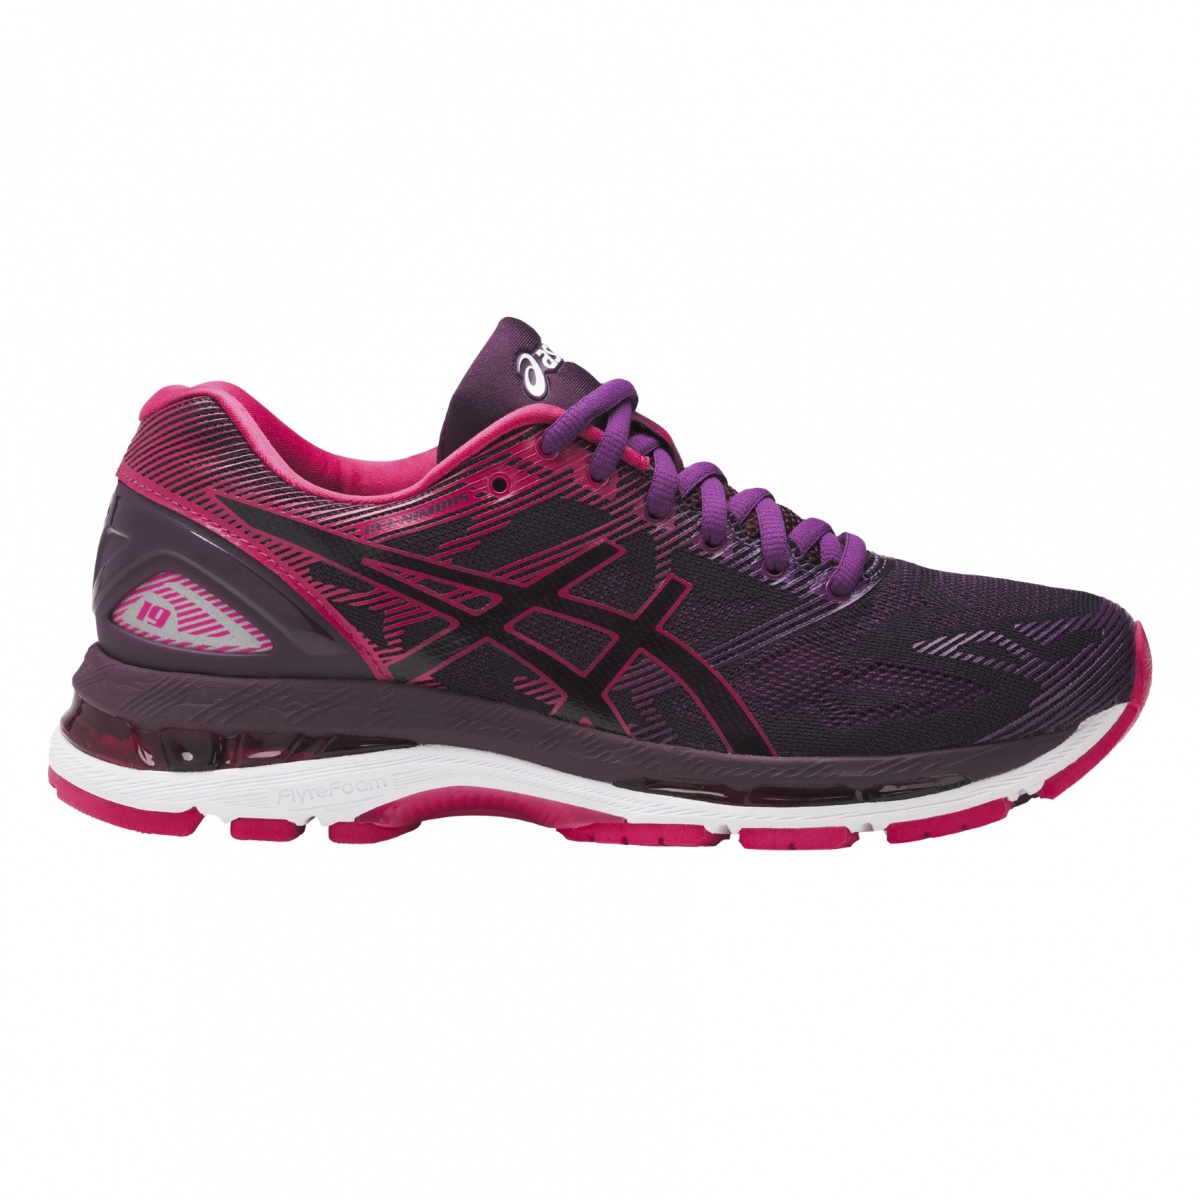 asics gel nimbus 19 2017 schwarz pink laufschuhe damen. Black Bedroom Furniture Sets. Home Design Ideas